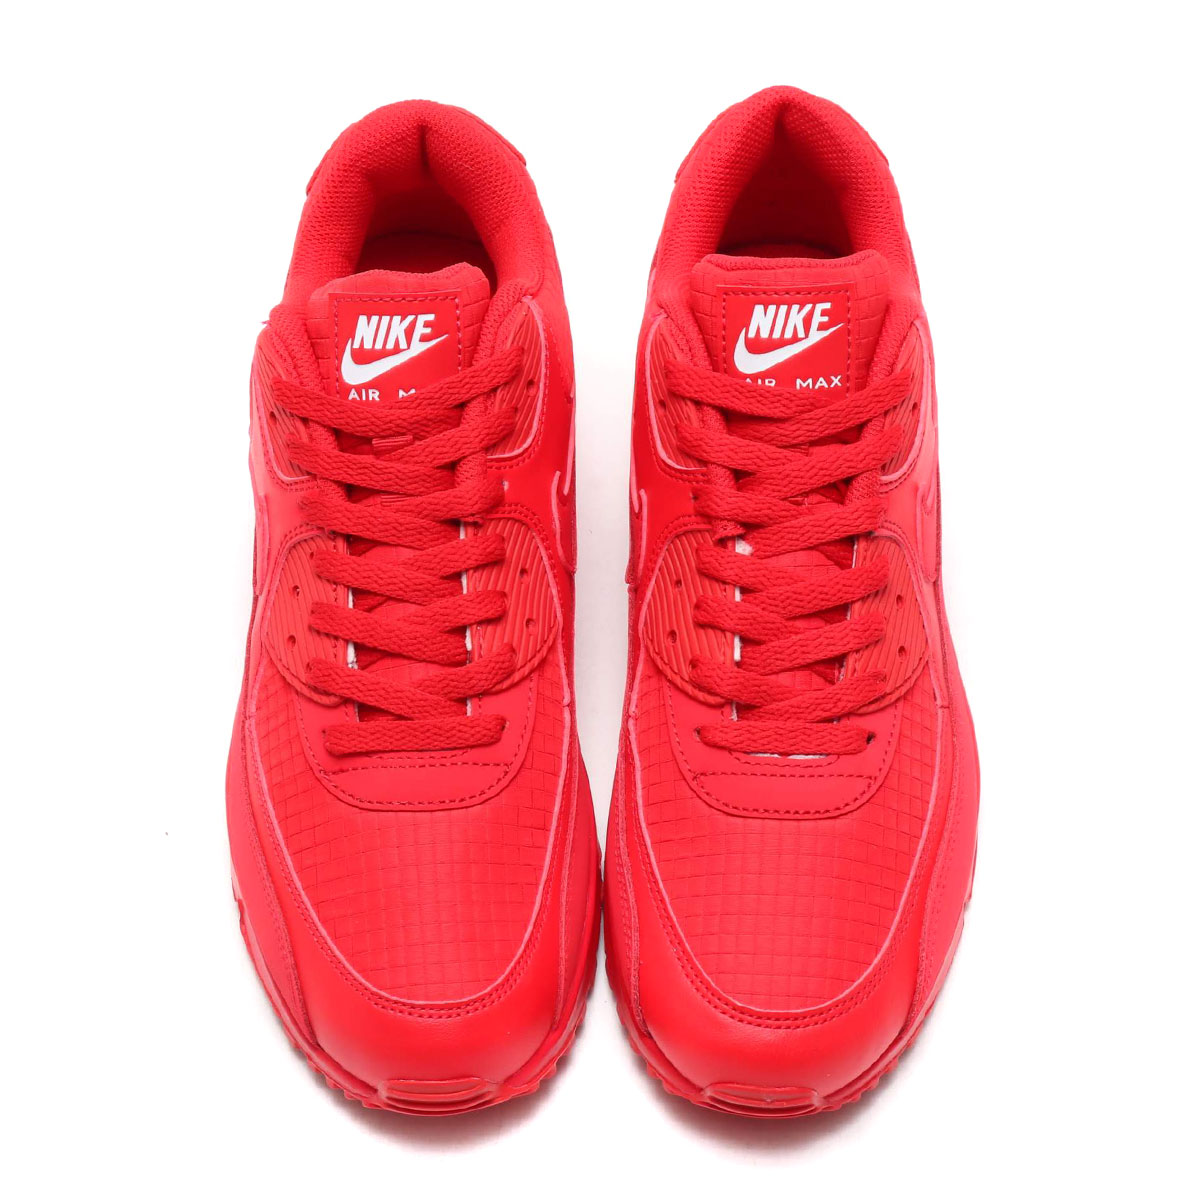 the latest 4e7c8 3c0f7 ... NIKE AIR MAX 90 ESSENTIAL (UNIVERSITY RED WHITE) (Kie Ney AMAX 90 ...